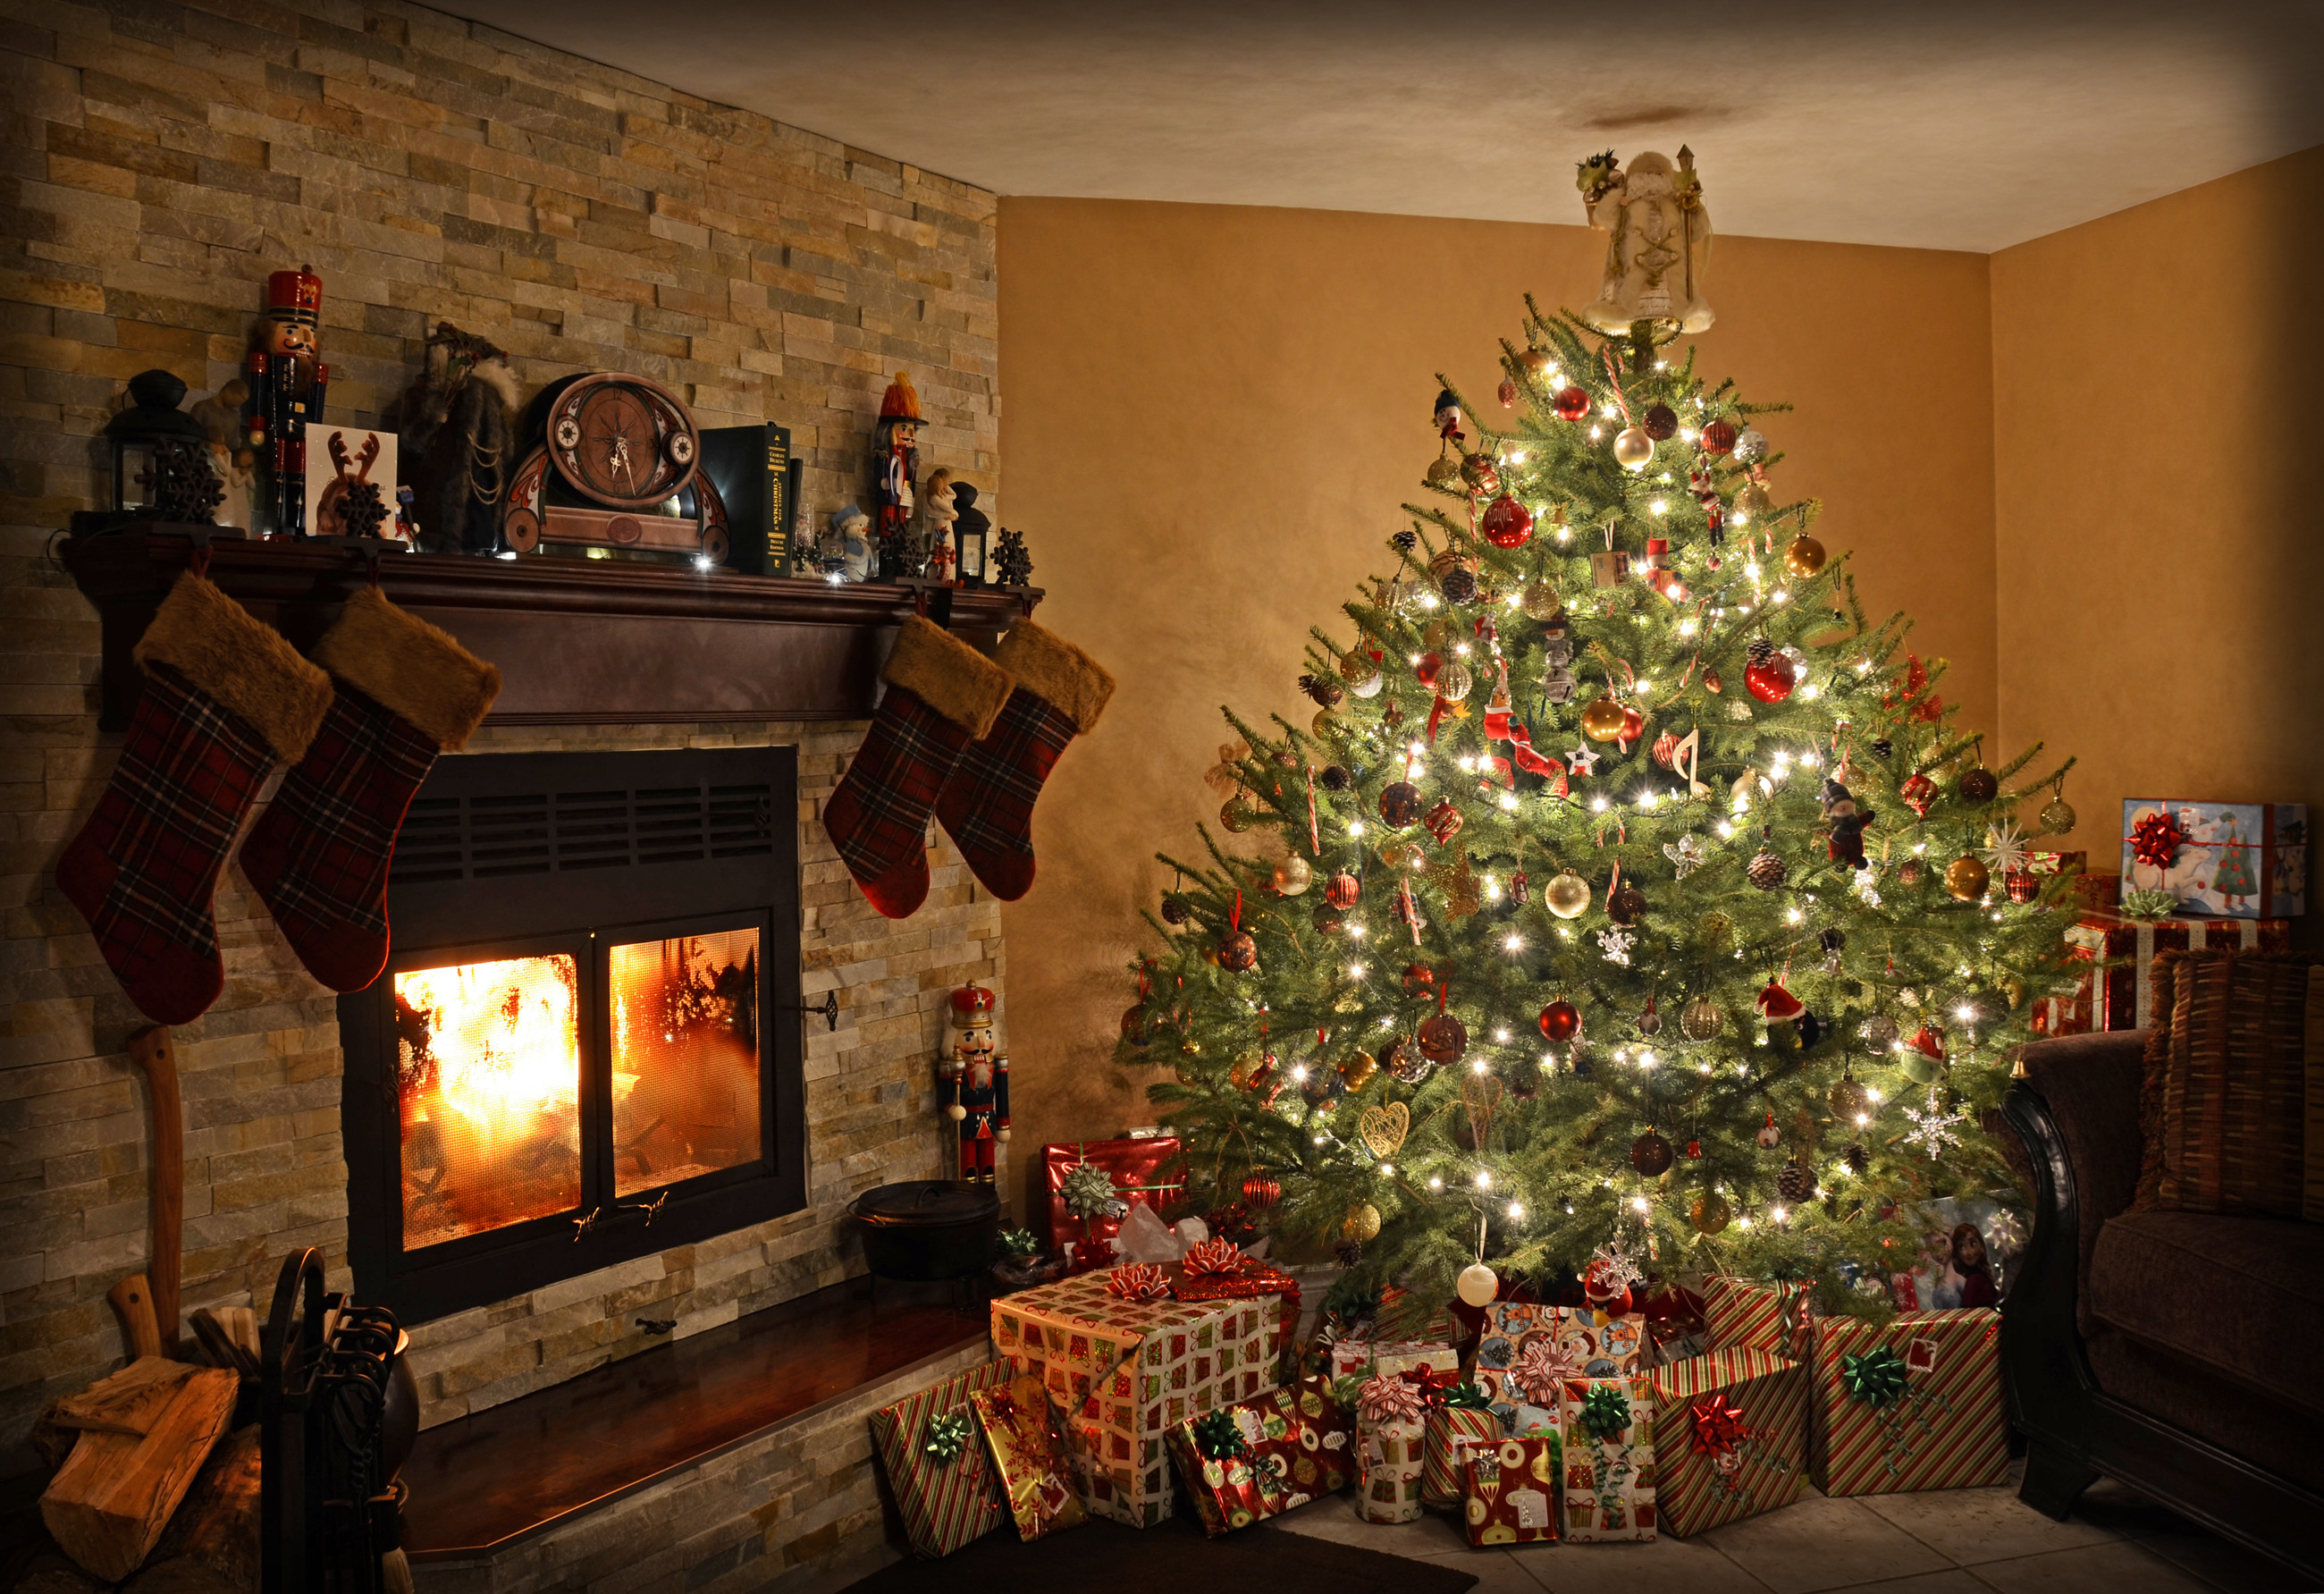 Christmas Fireplace Wallpaper Christmas Fireplace Wallpaper 57 Images